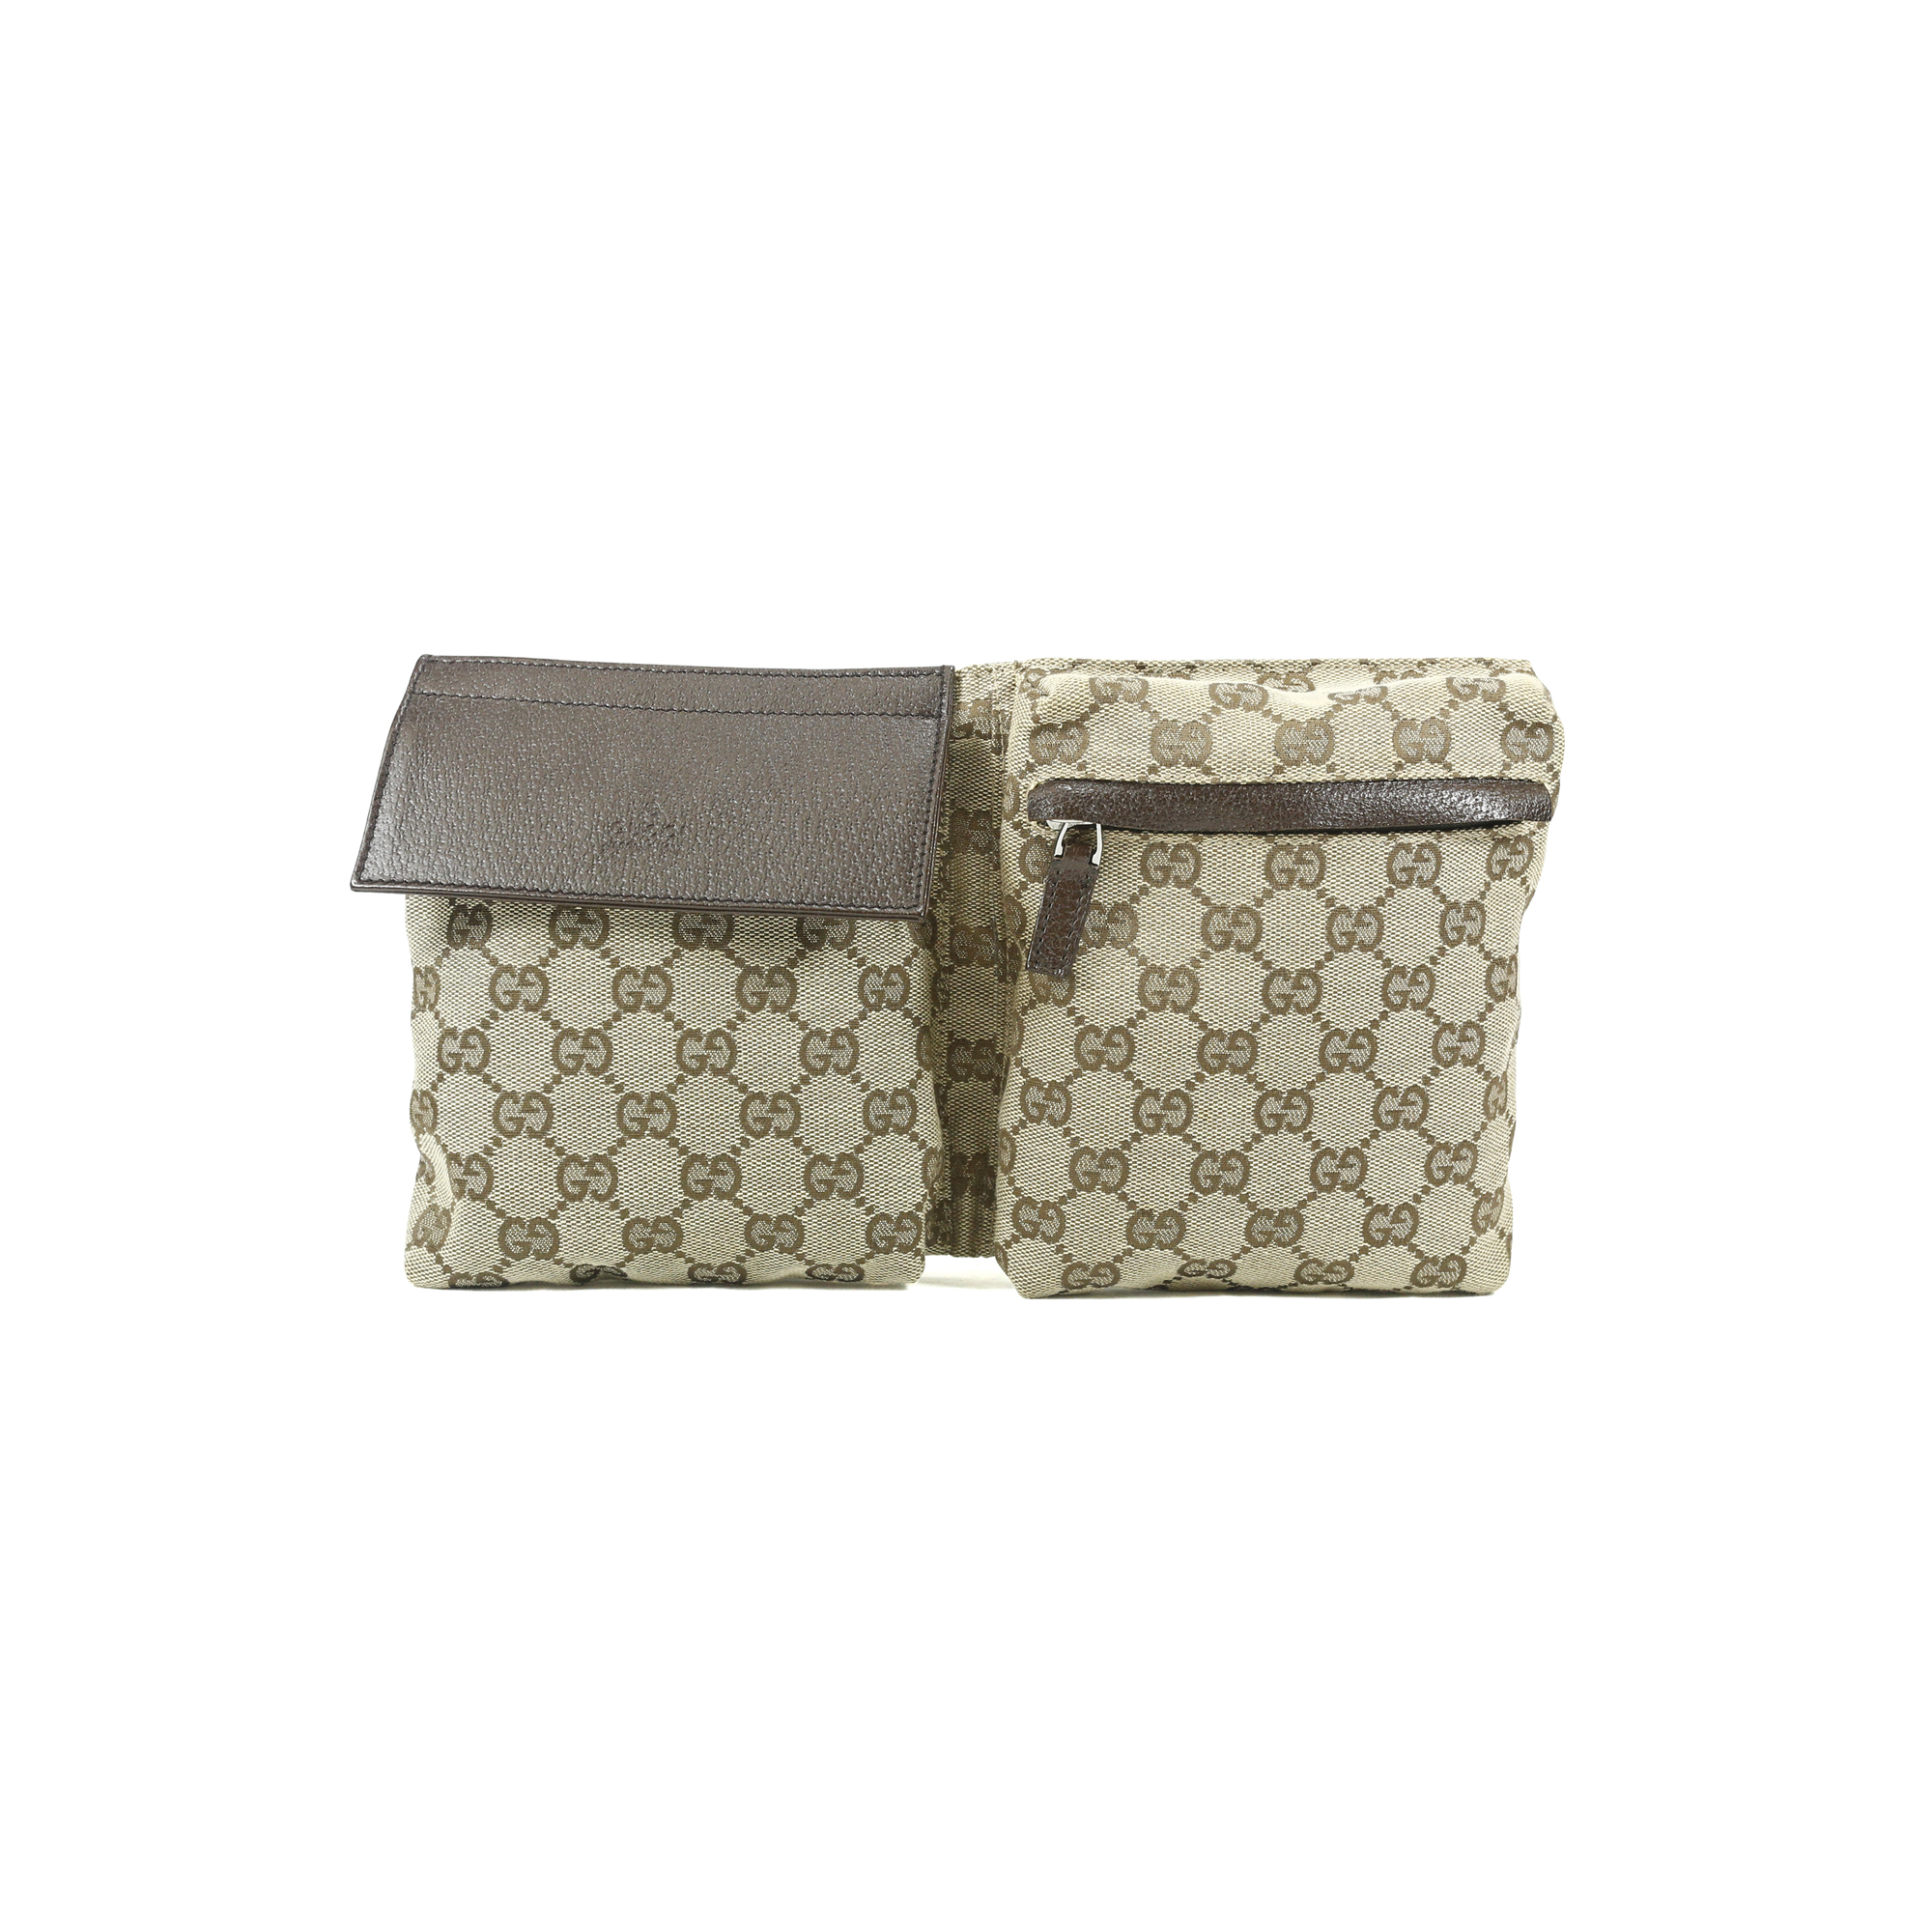 14d7575f5609 Authentic Second Hand Gucci Monogram Belt Bag (PSS-004-00072) | THE FIFTH  COLLECTION